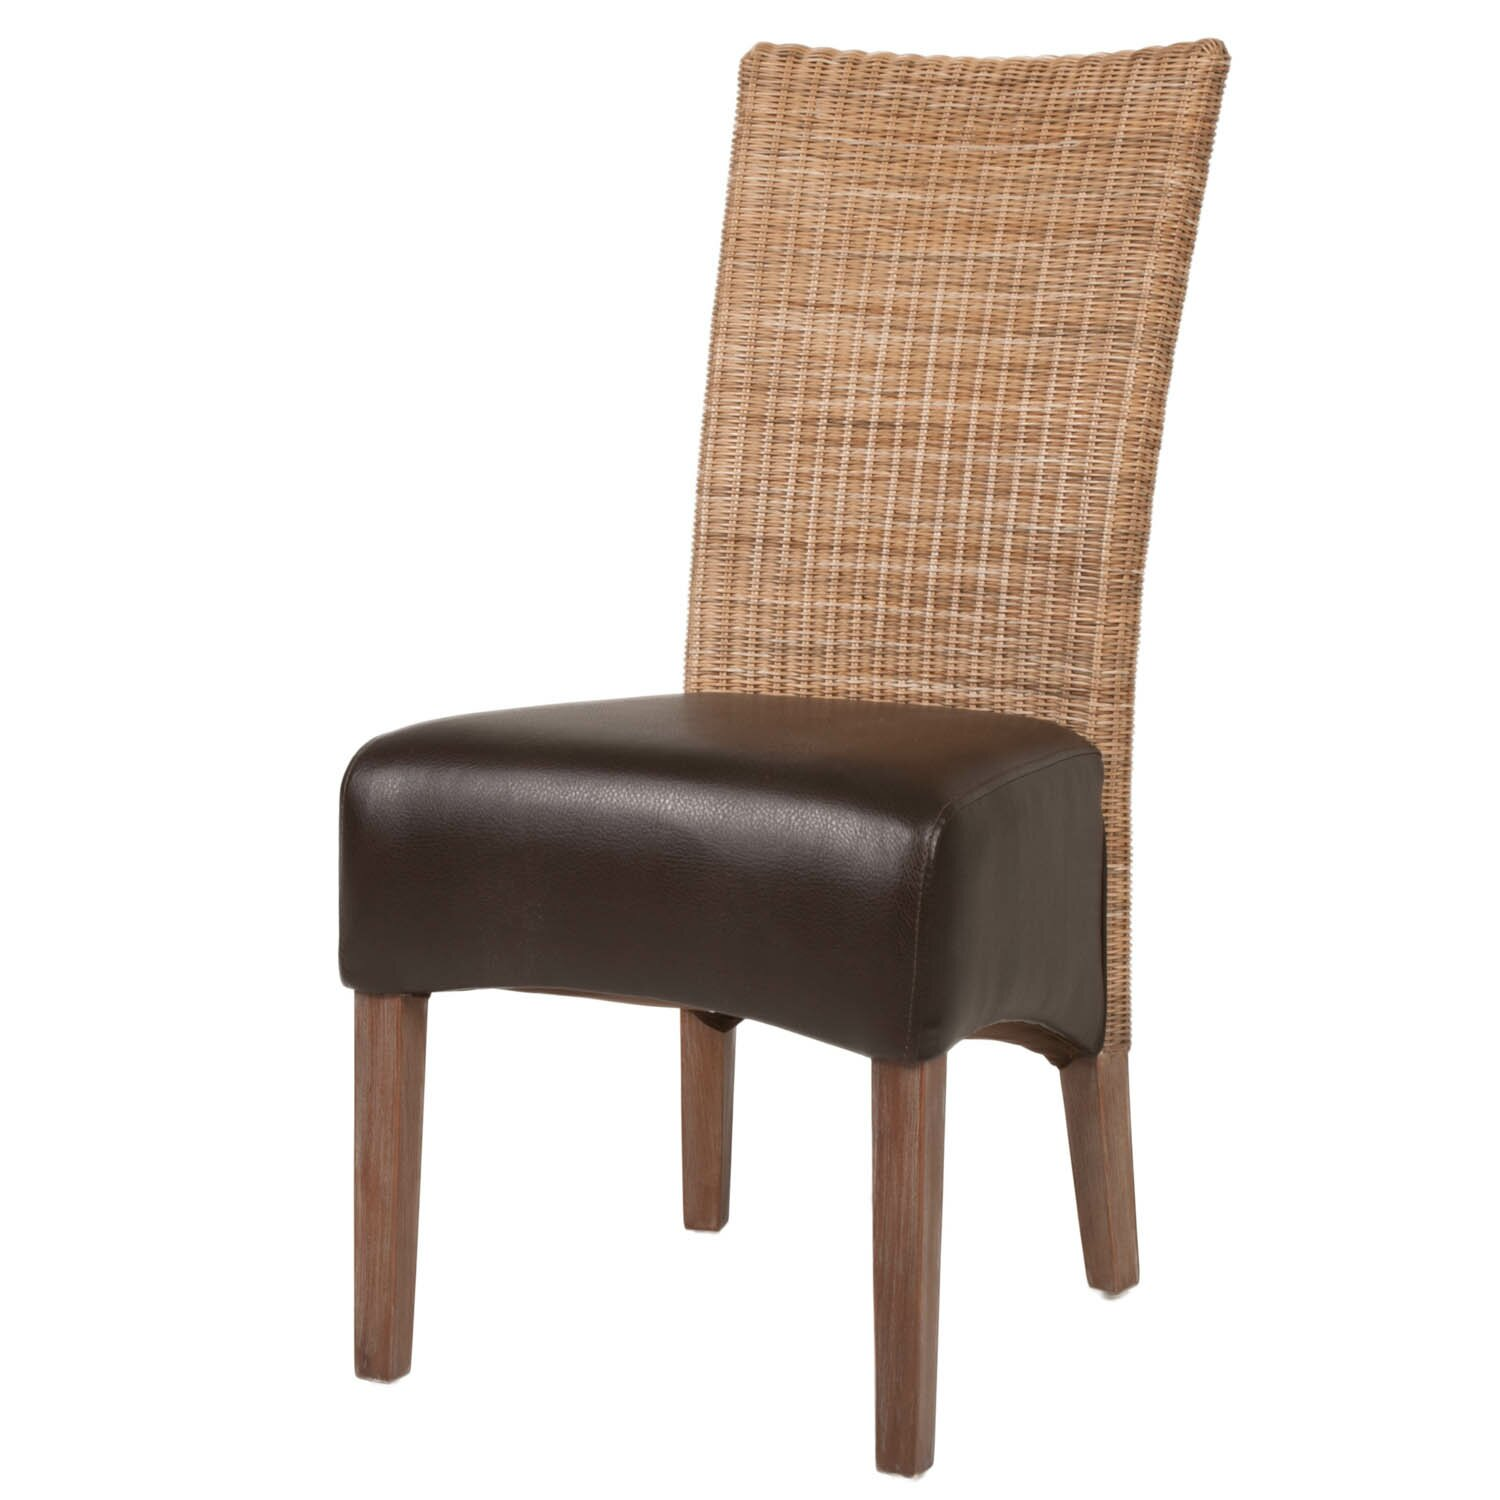 Orient express furniture hampton side chair reviews for Furniture express